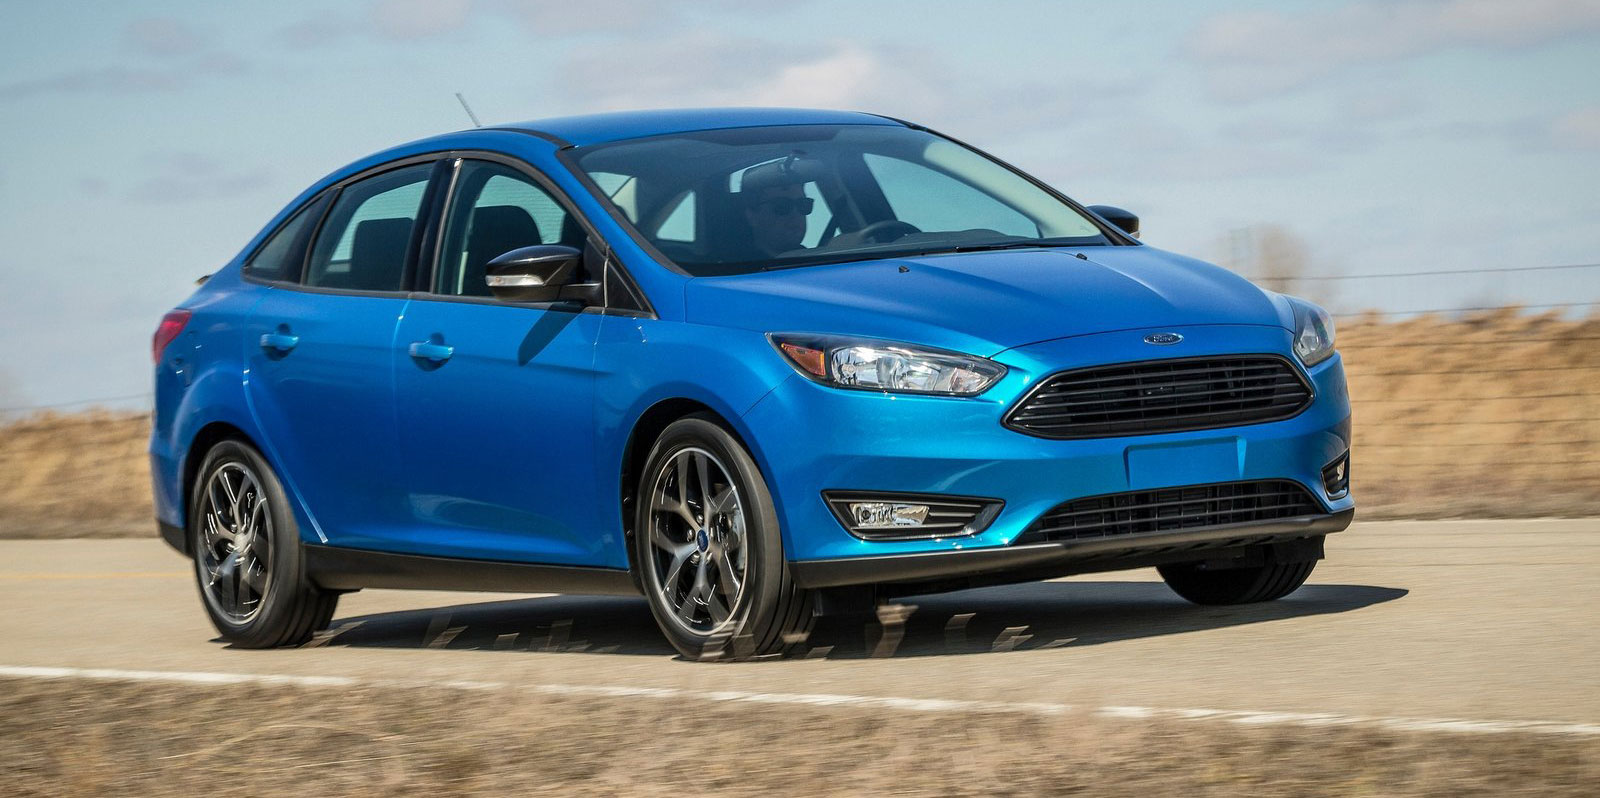 2015 Ford Focus Sedan facelift unveiled: new rear end